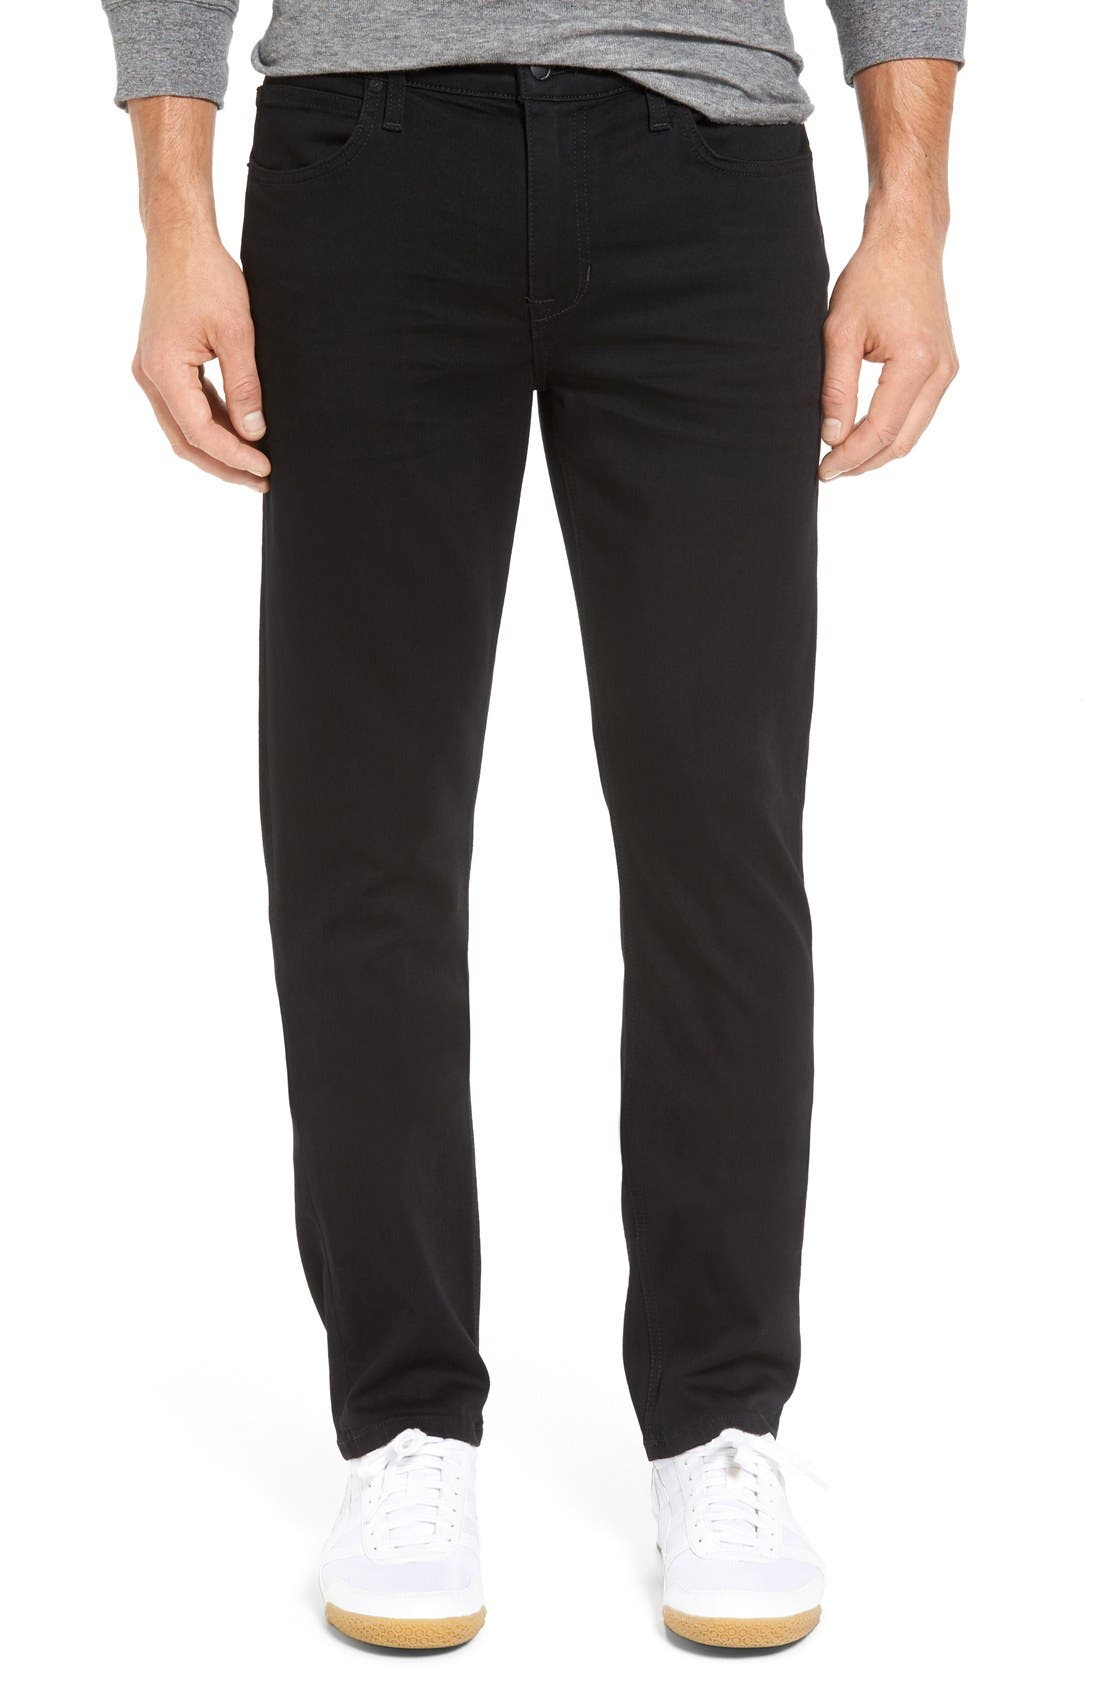 Brixton Kinetic Slim Straight Fit Jeans,                         Main,                         color, 001